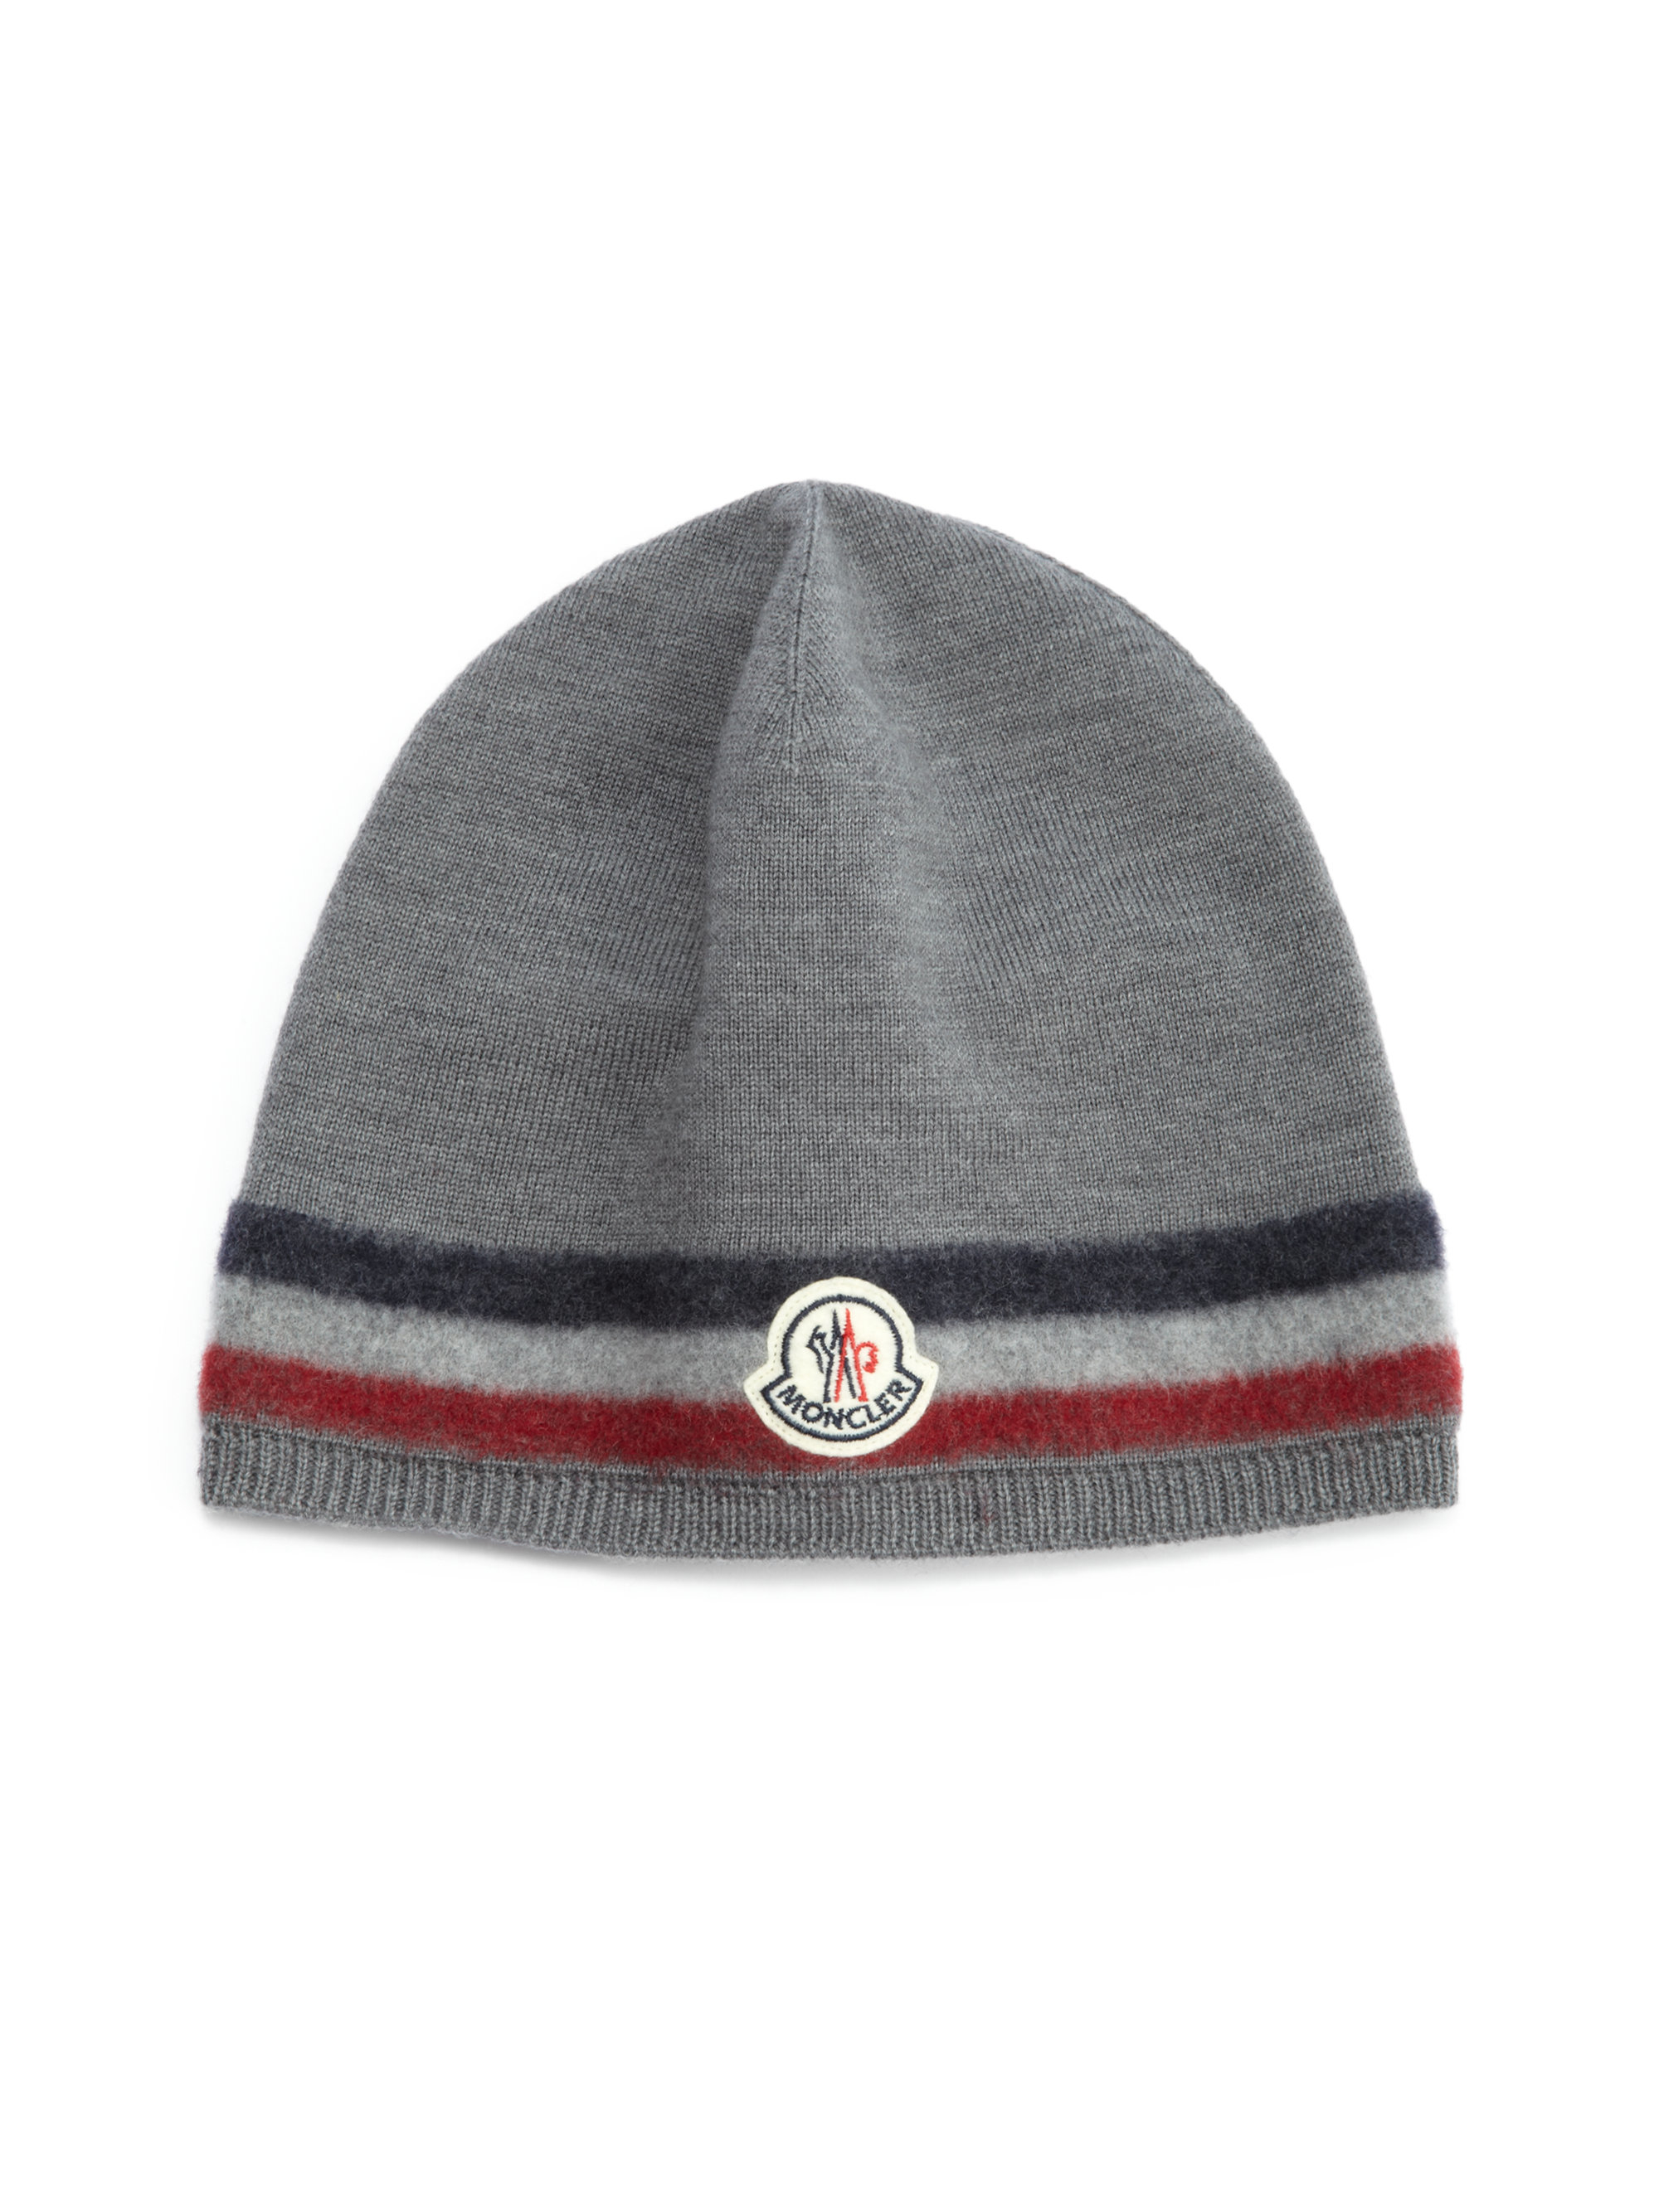 6b13cca040f5 Lyst - Moncler Striped Wool Hat in Gray for Men